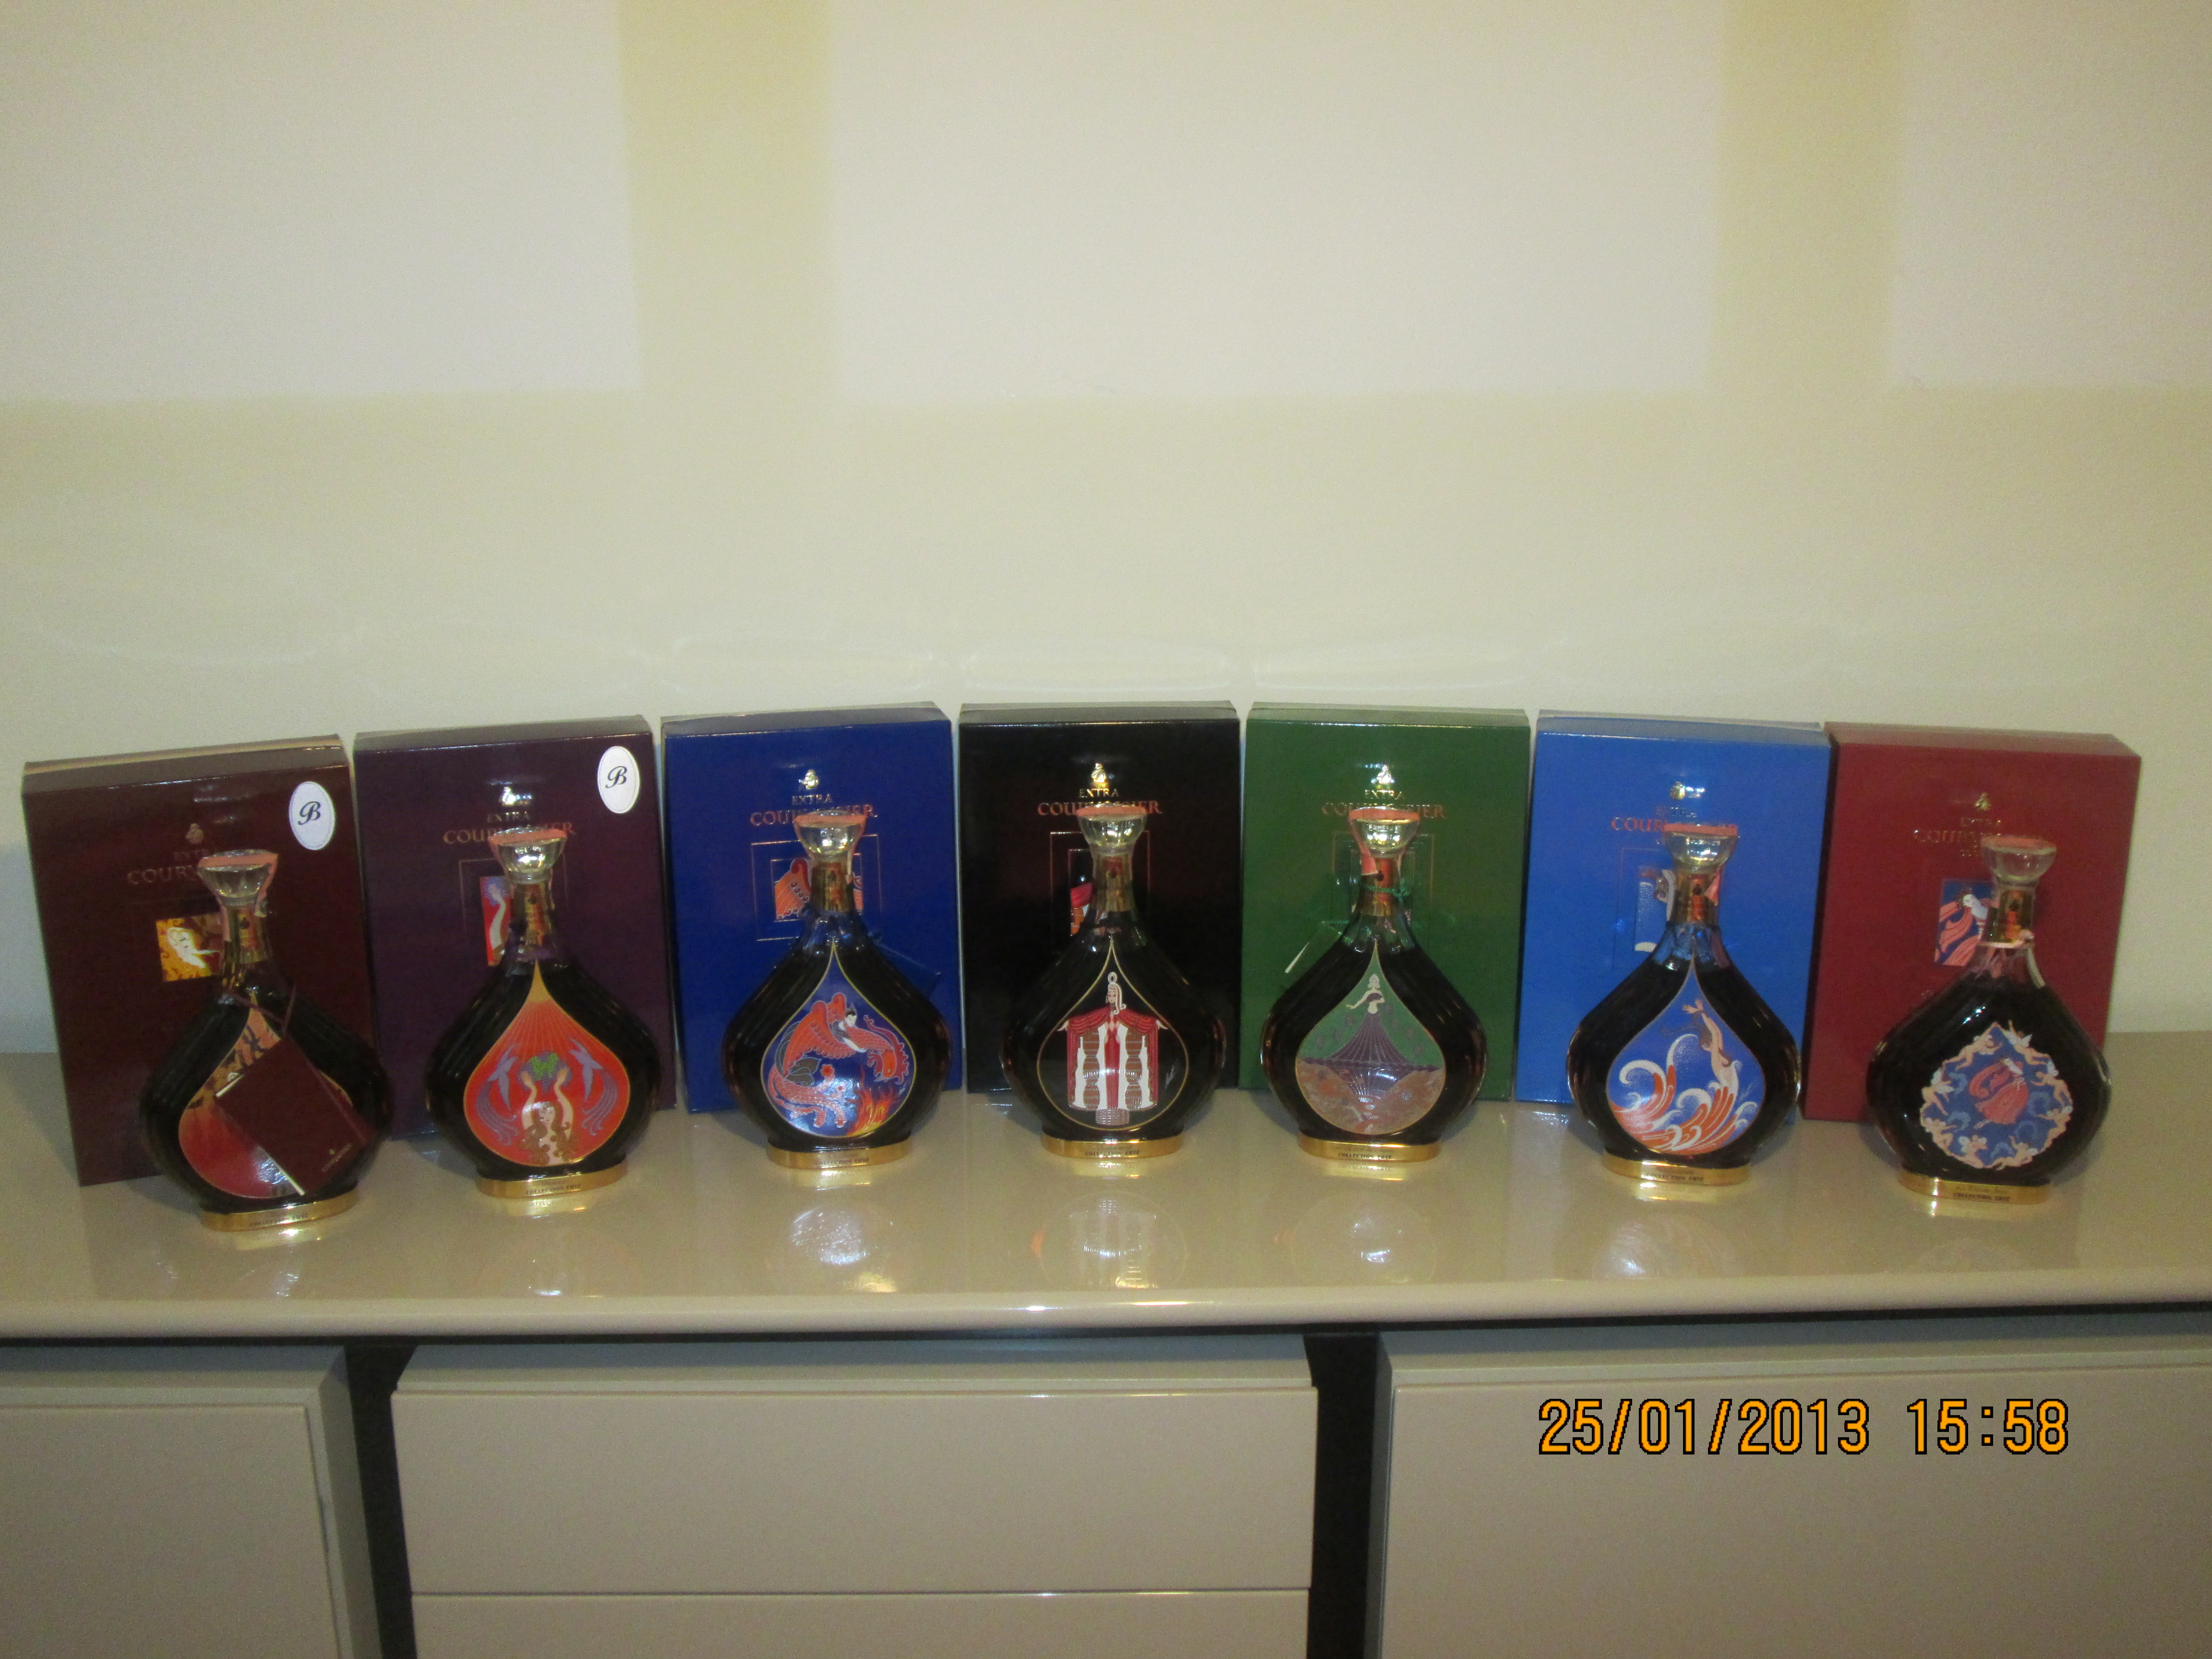 Complete Courvoisier Collection Erte 7 Bottles with cases and certifications